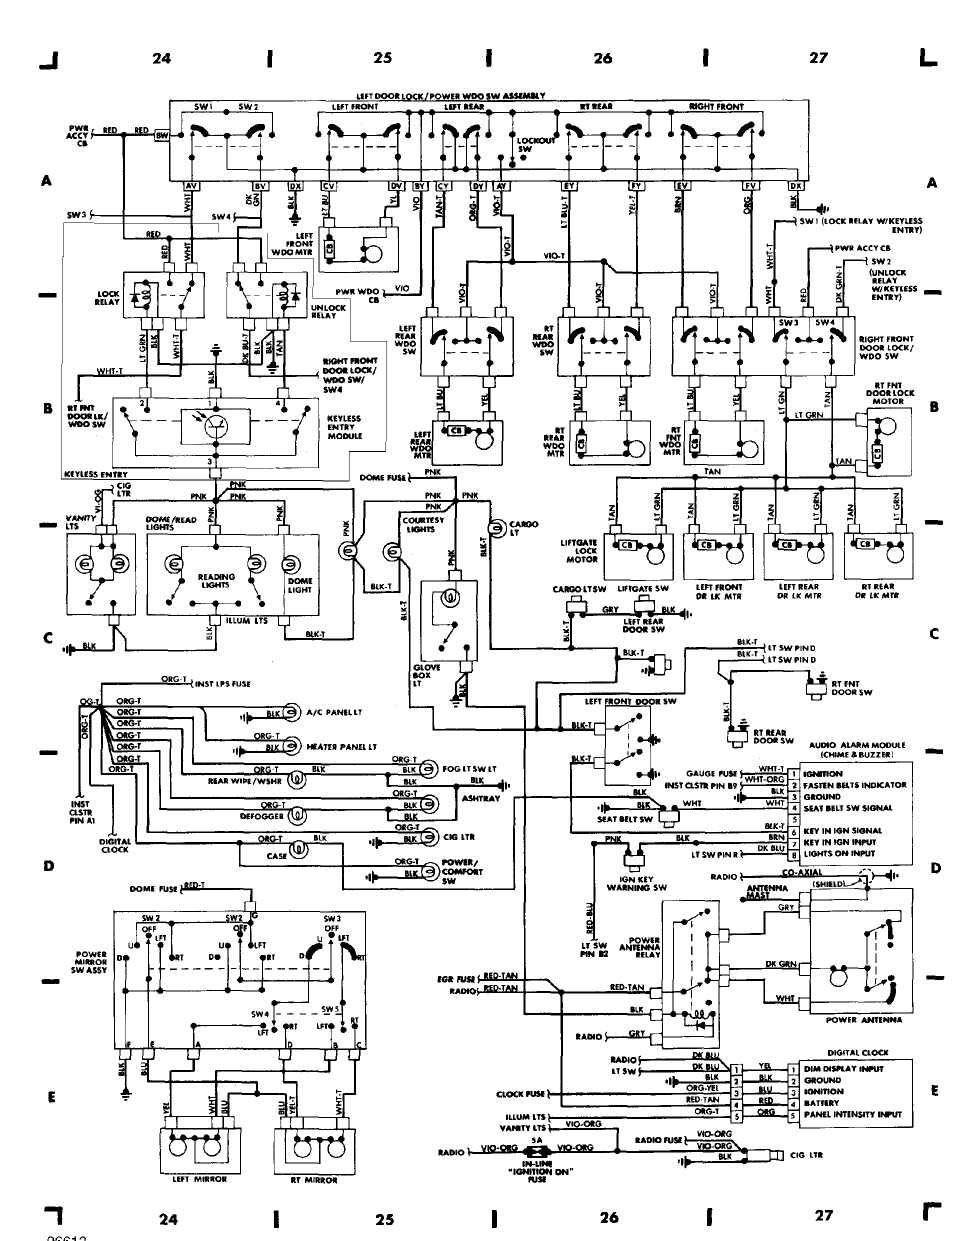 wiring_diagrams_html_61f5e0ad 2000 jeep xj wiring diagram 1998 jeep cherokee wiring diagrams pdf 1997 jeep cherokee fuse box diagram at creativeand.co